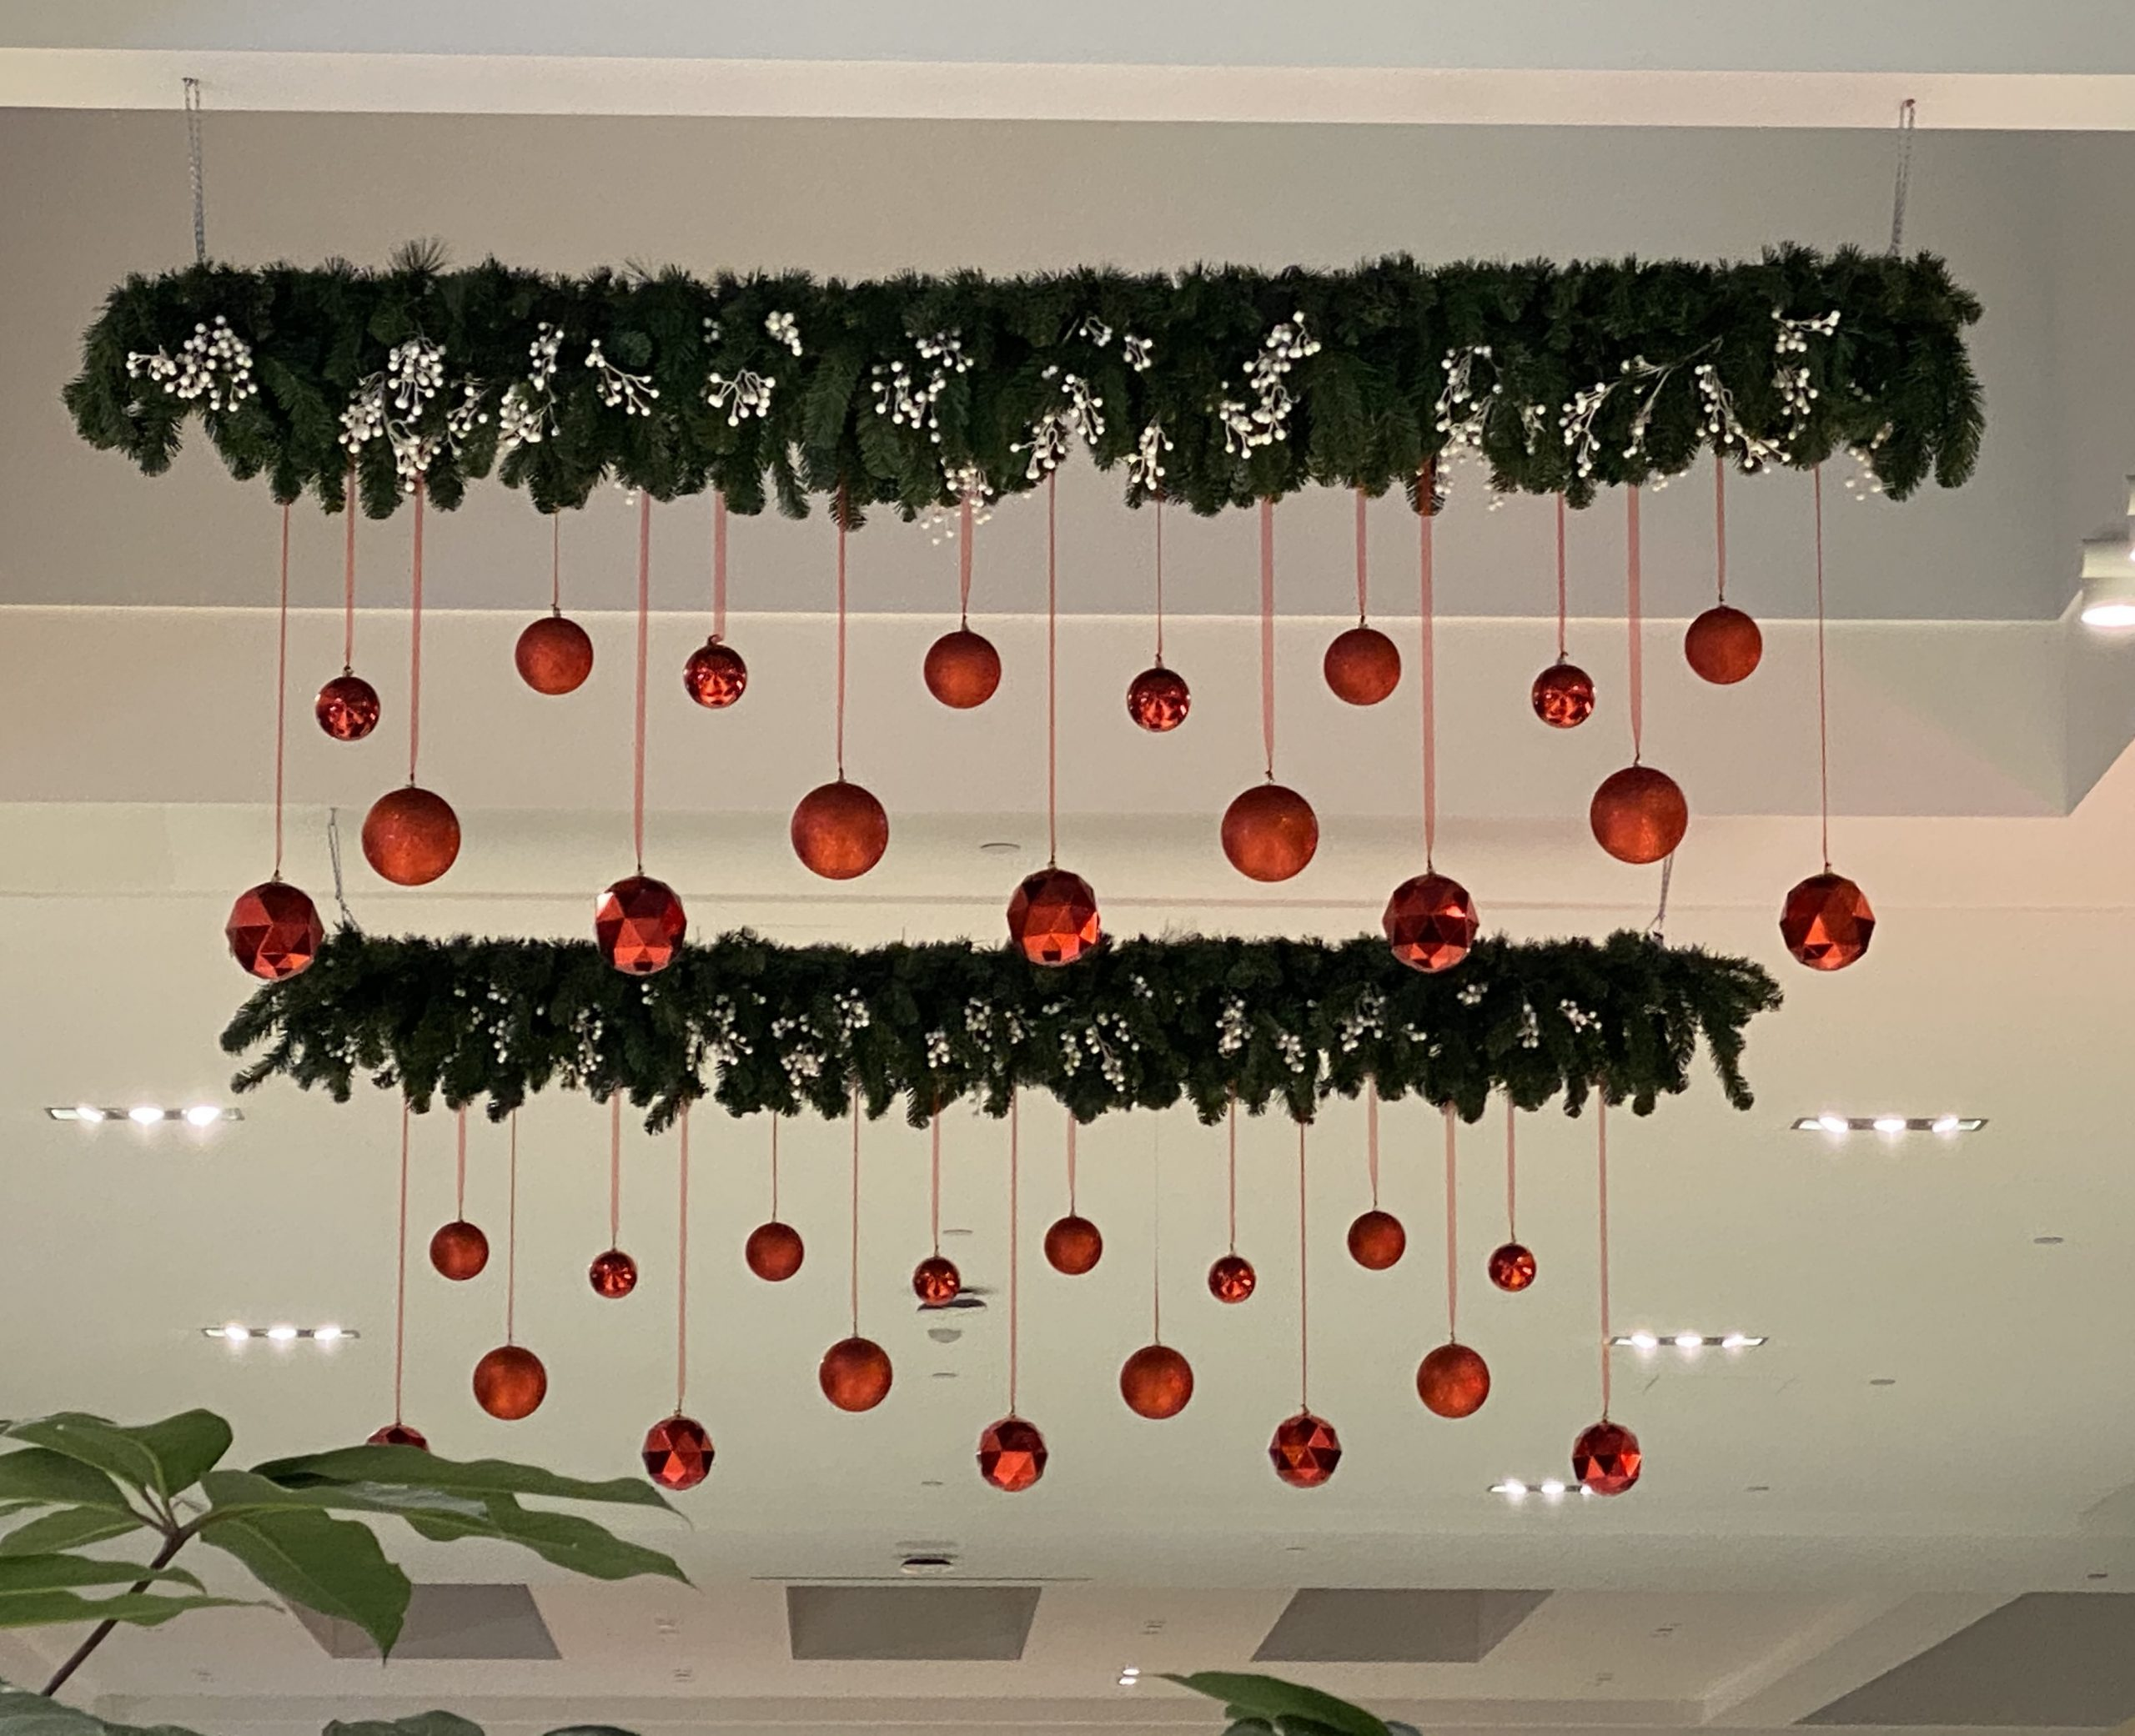 Hanging custom christmas garland with white berries and hanging red ornaments